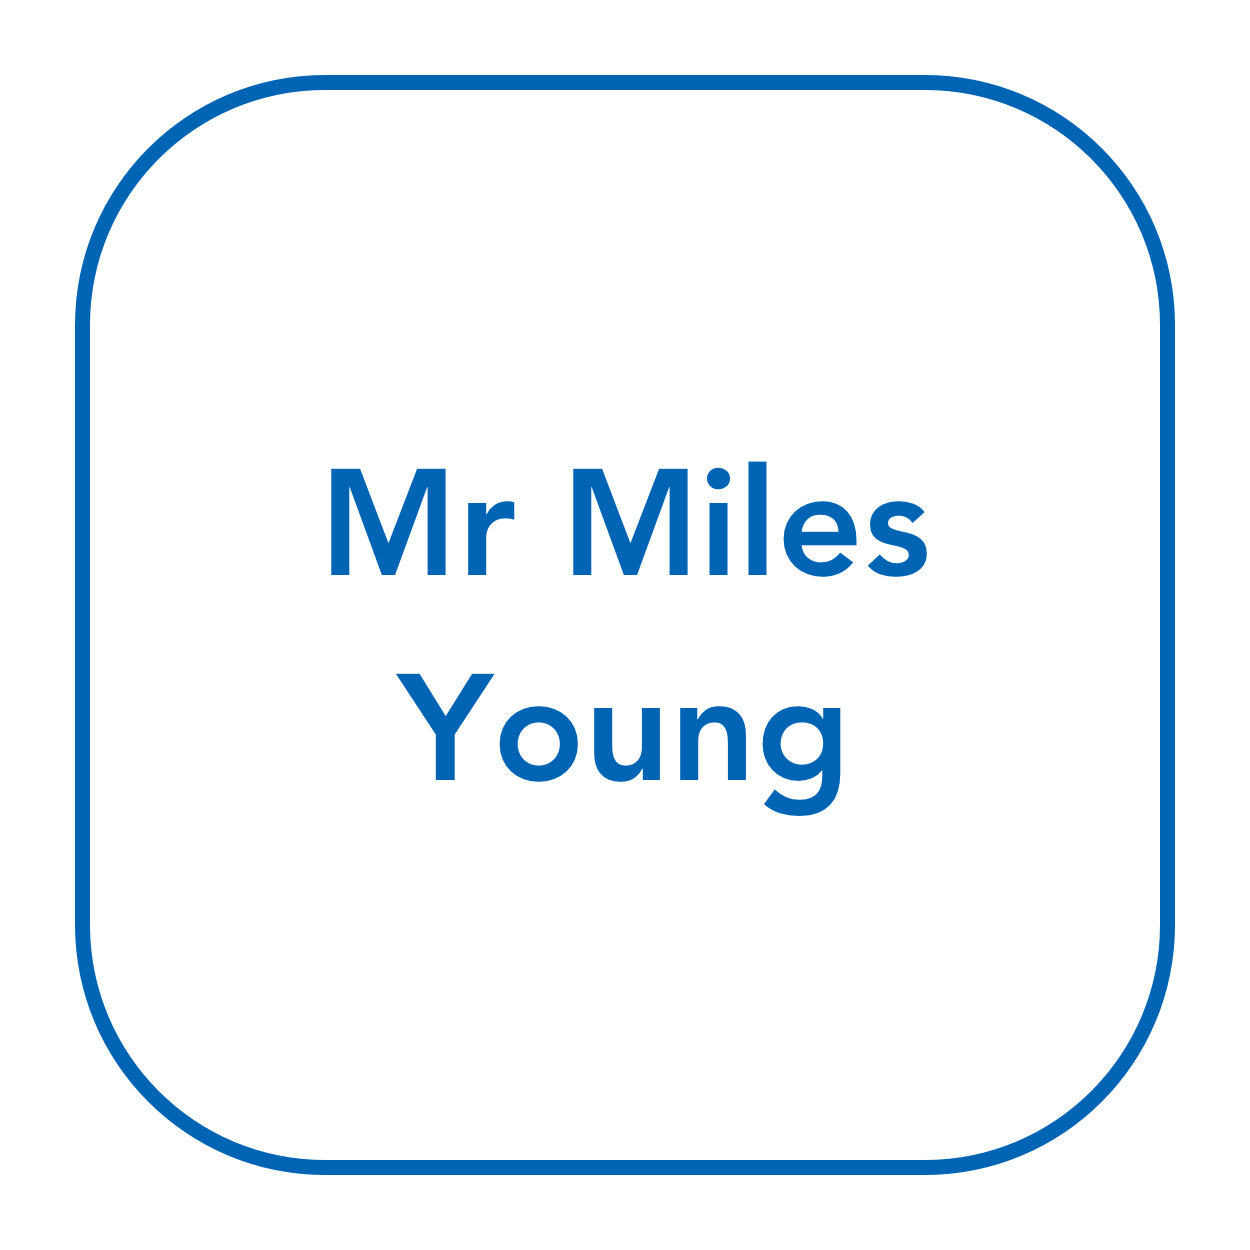 Mr Miles Young